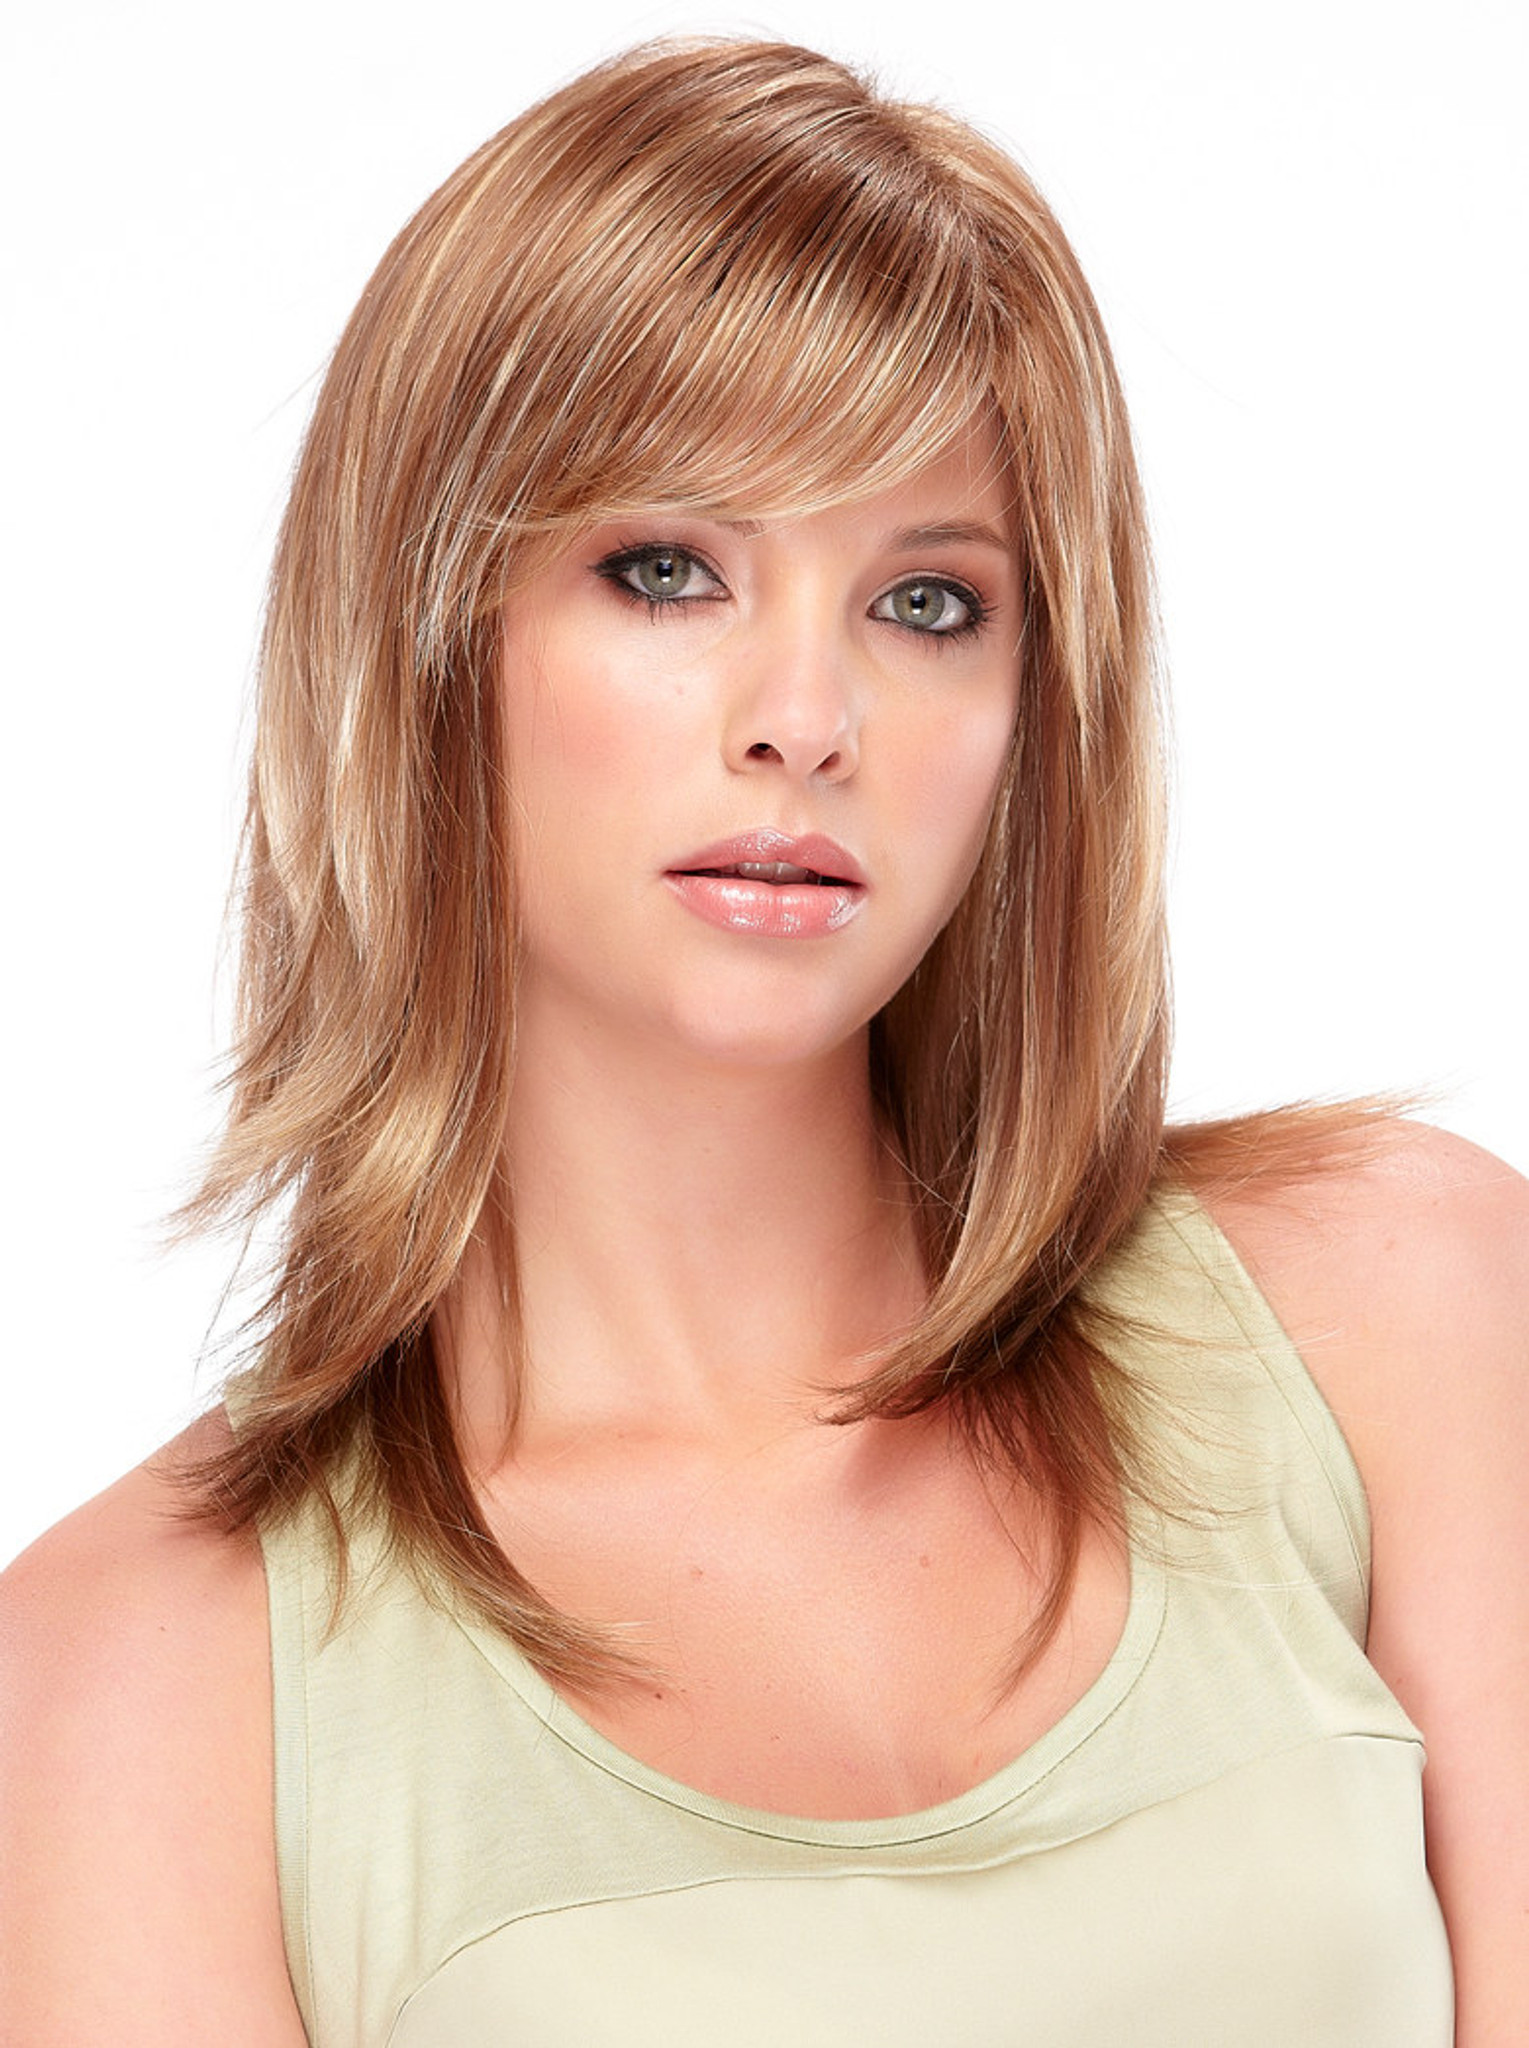 Angelique Synthetic Wig By Jon Renau front View 2